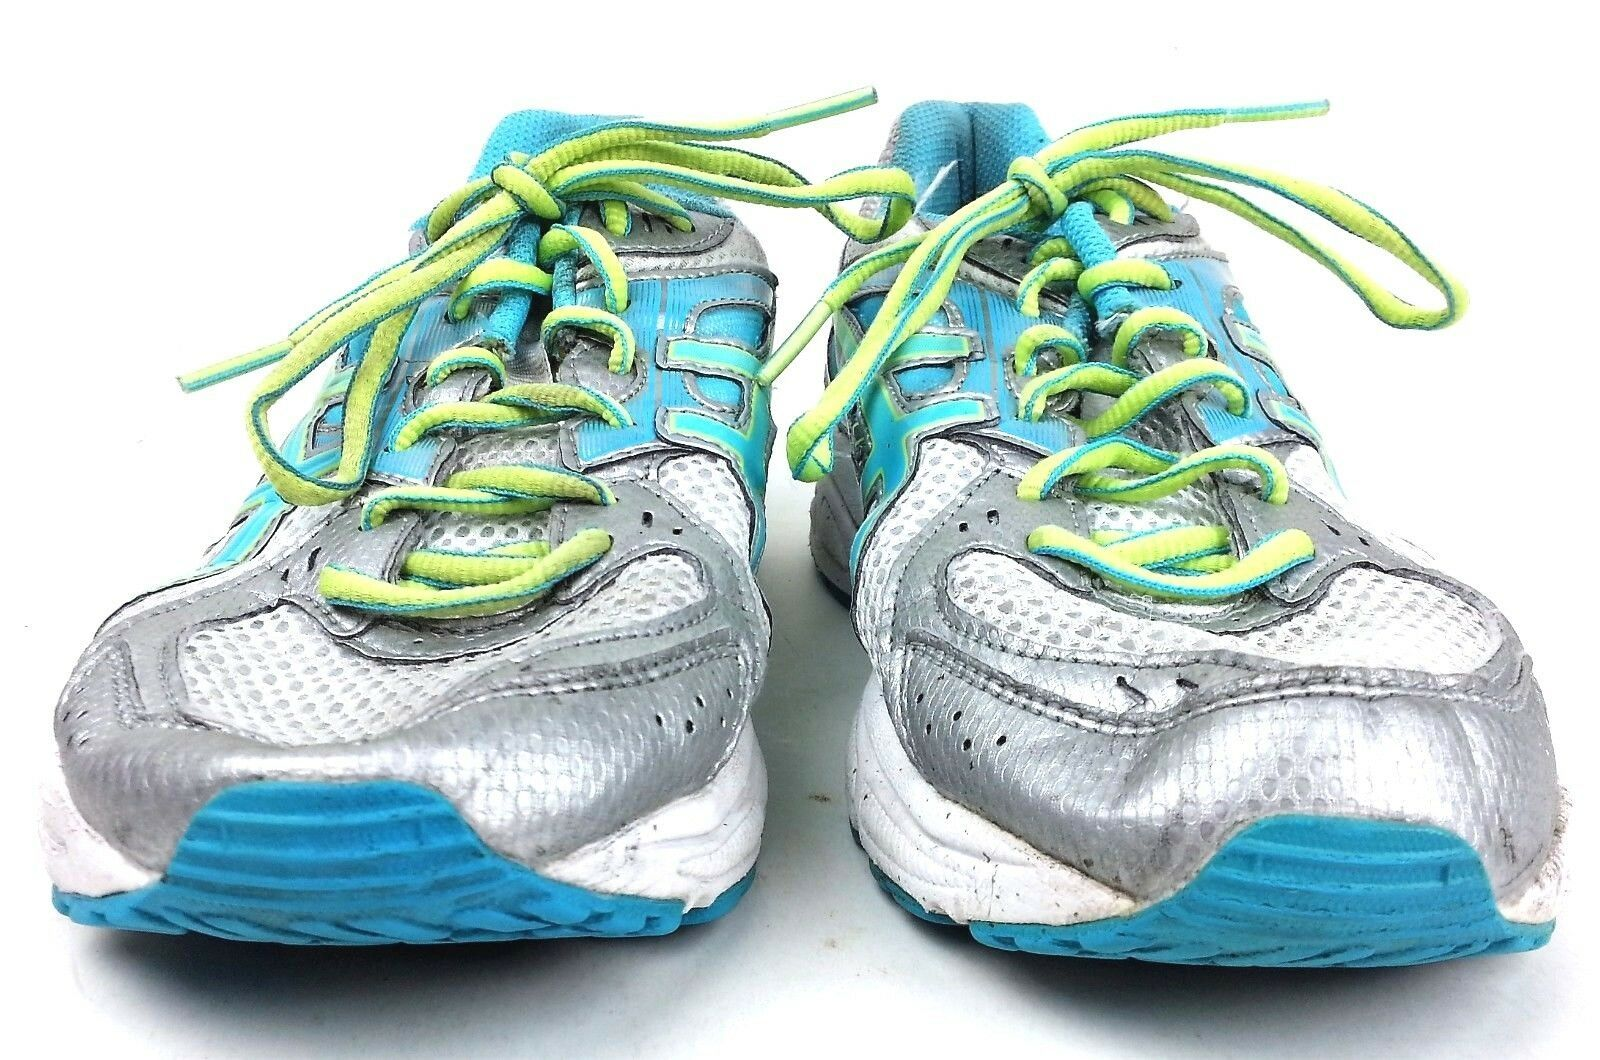 Asics Womens Gel Contend 2 Running Shoes Size 9.5 Sneakers T474N Silver Teal image 7